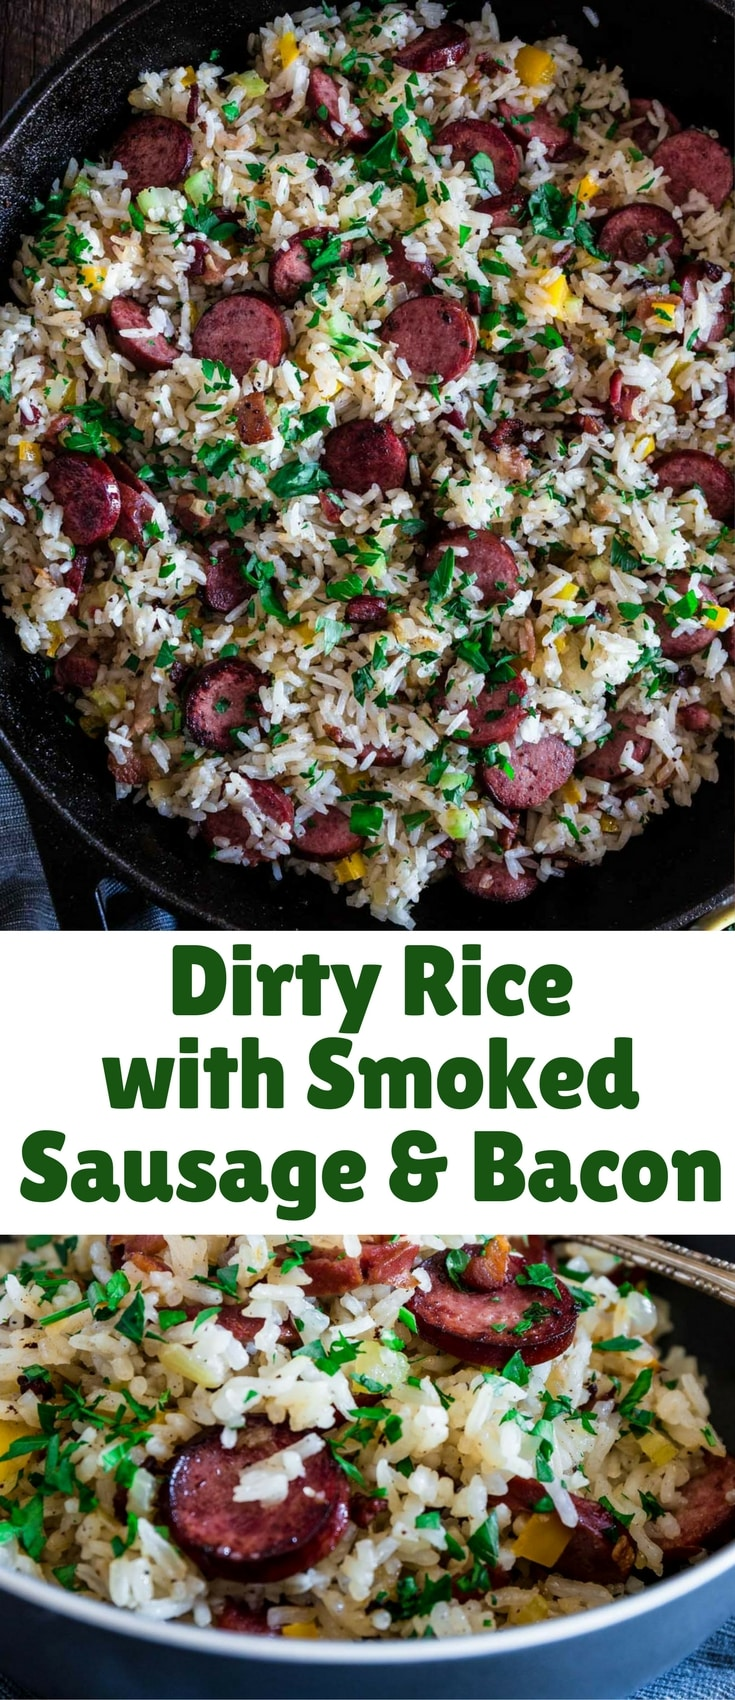 This spin on the classic Cajun/Creole Dirty Rice is made with bacon and smoked sausage instead of the traditional chicken liver. Easy, hearty and perfect as a weeknight meal or as a side dish for a special occasion.